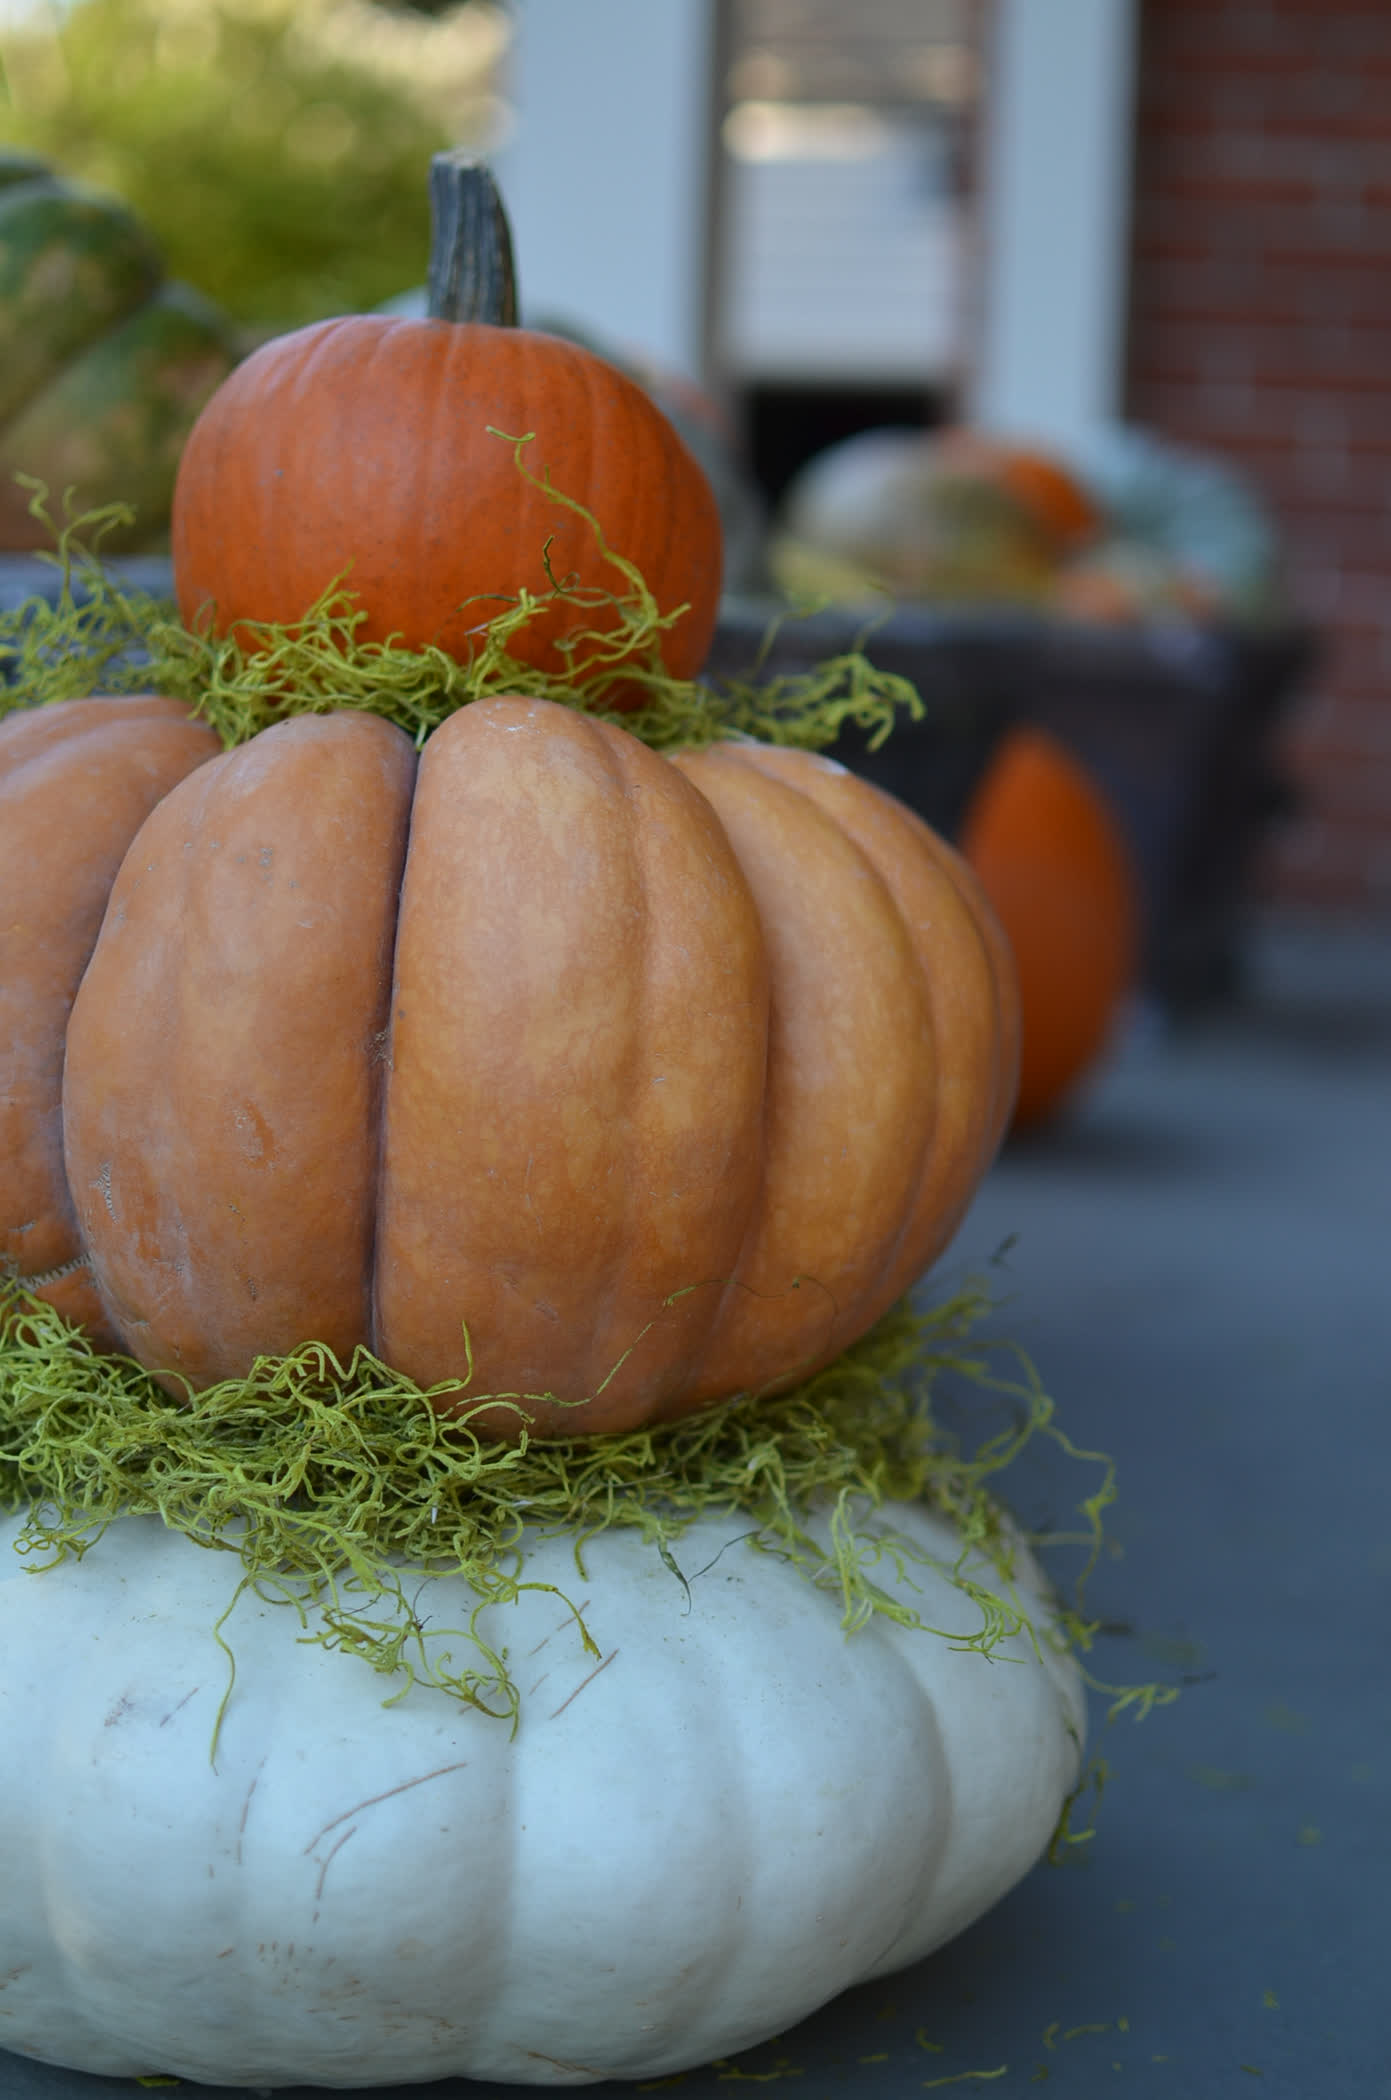 Don't cut your pumpkin; Display it as-is.